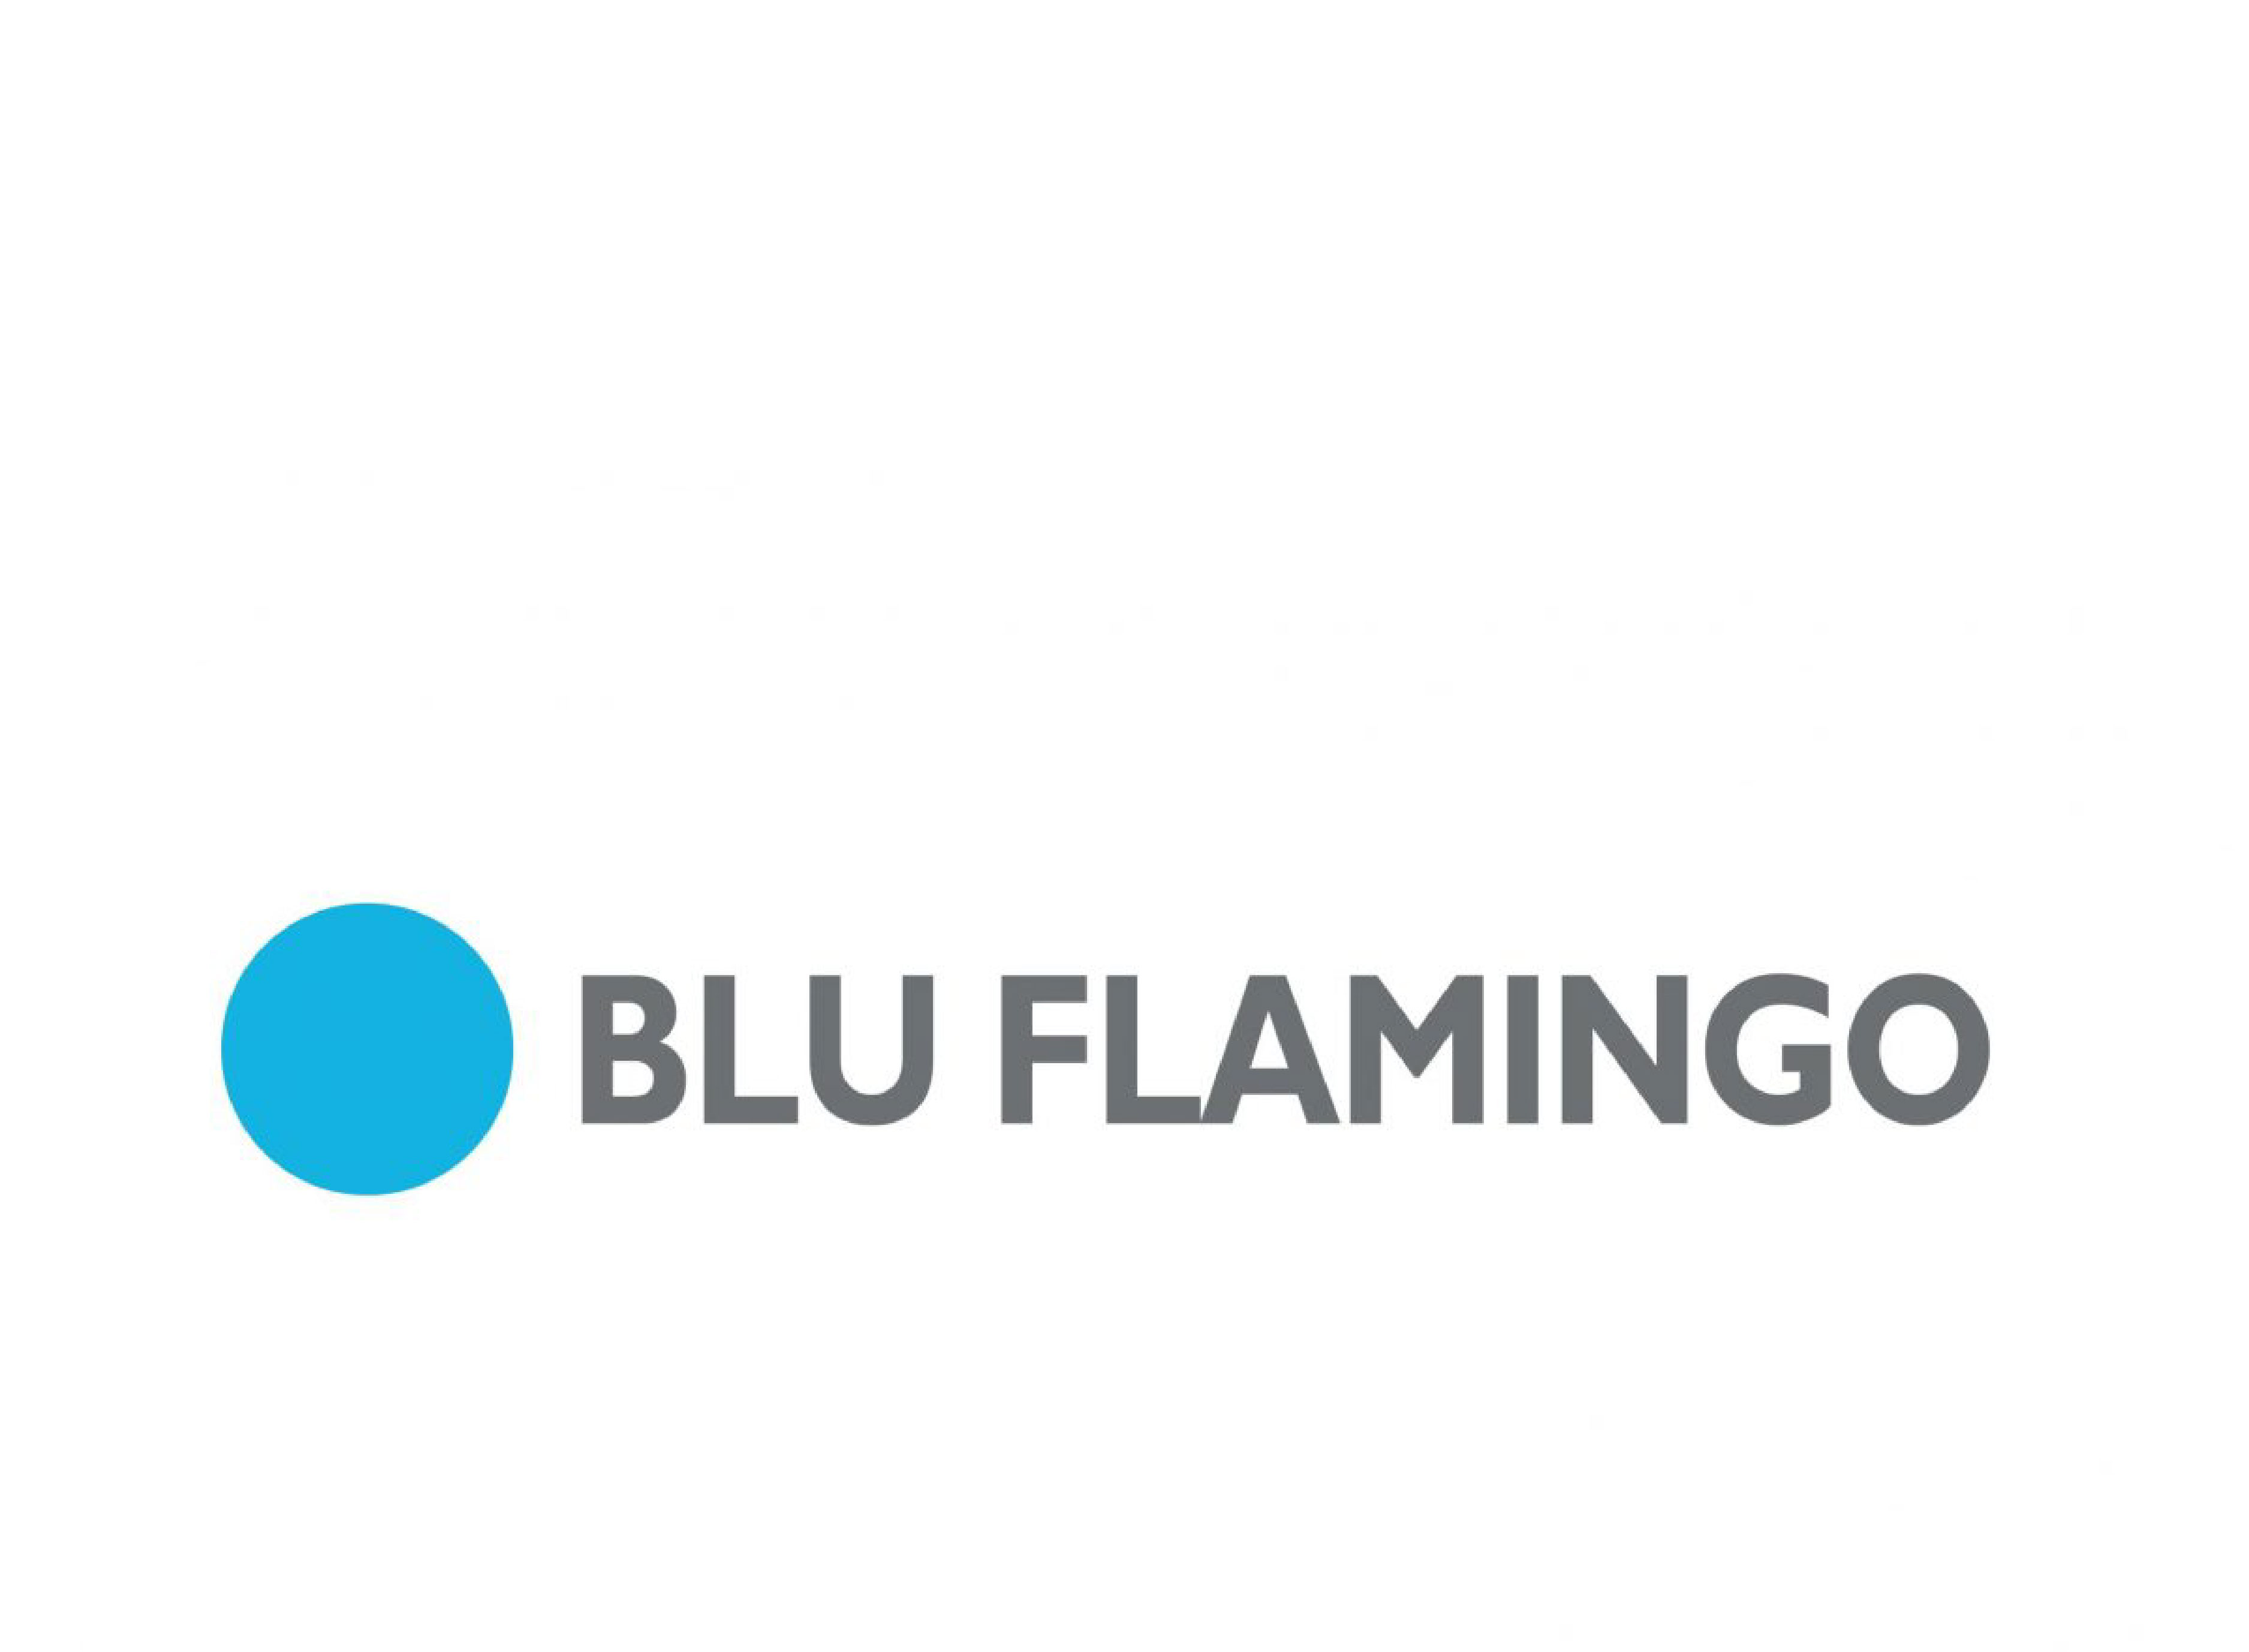 tactive consulting - blu flamingo resize 3